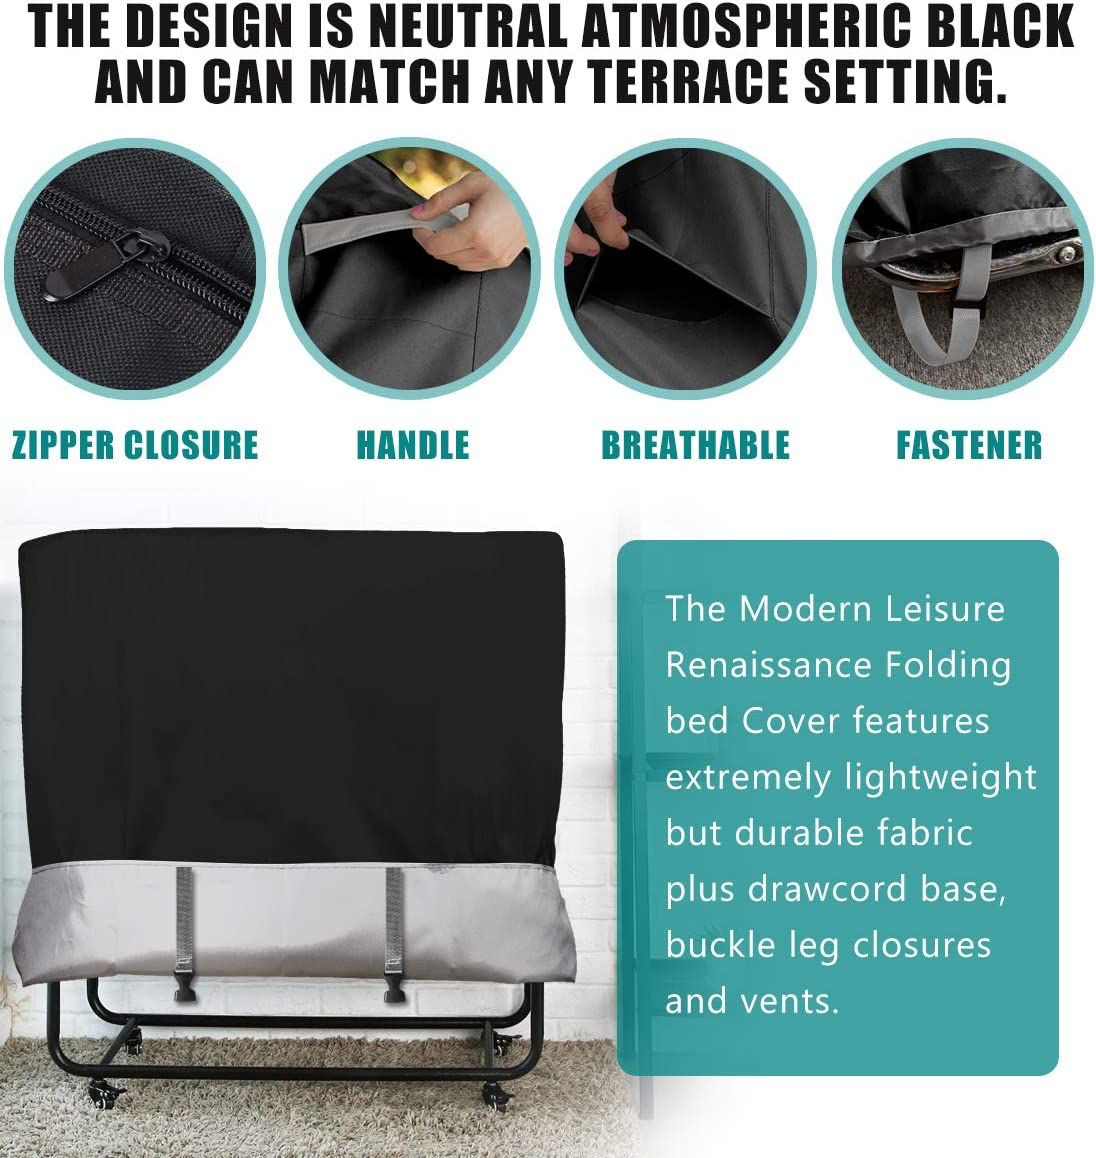 WES Folding Bed Dustproof Cover Protective Cover for Indoor Outdoor Adjustable Waterproof Protector Multifunctional Cover Black